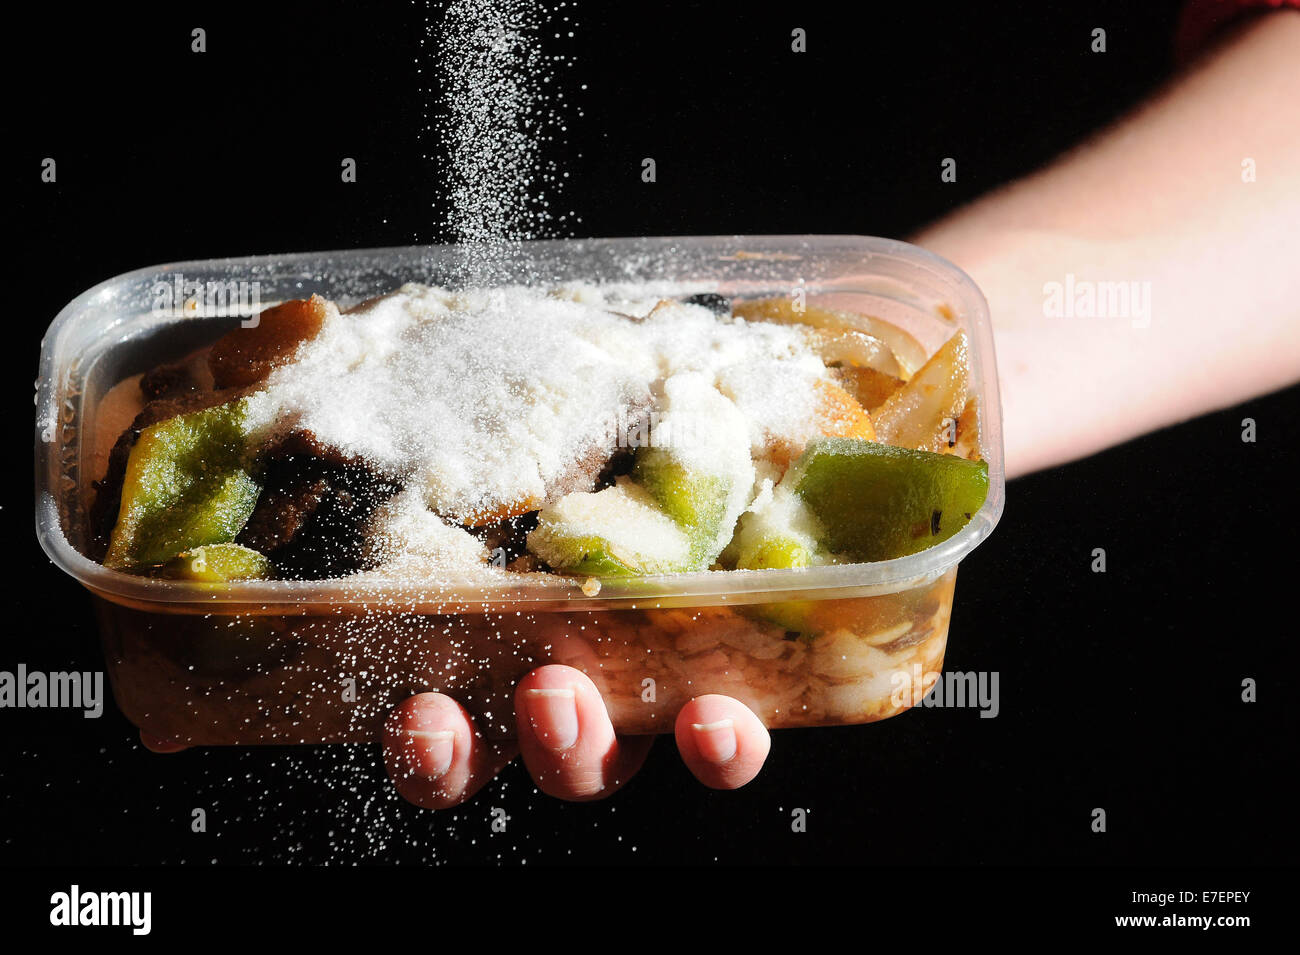 A woman pours salt on an unhealthy takeaway meal. - Stock Image